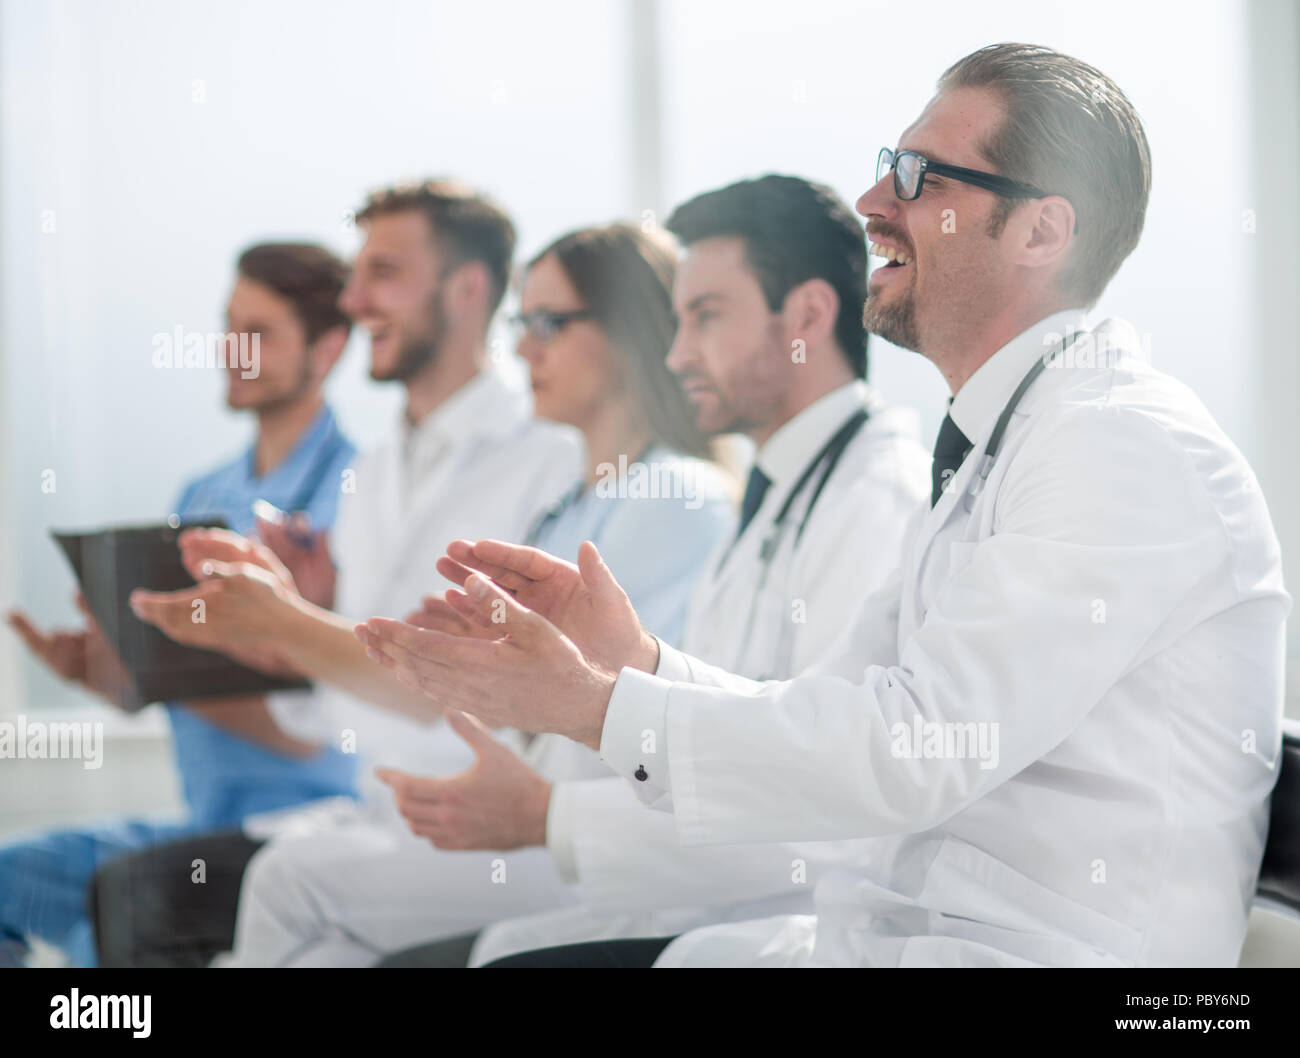 Medical team applauding in meeting - Stock Image